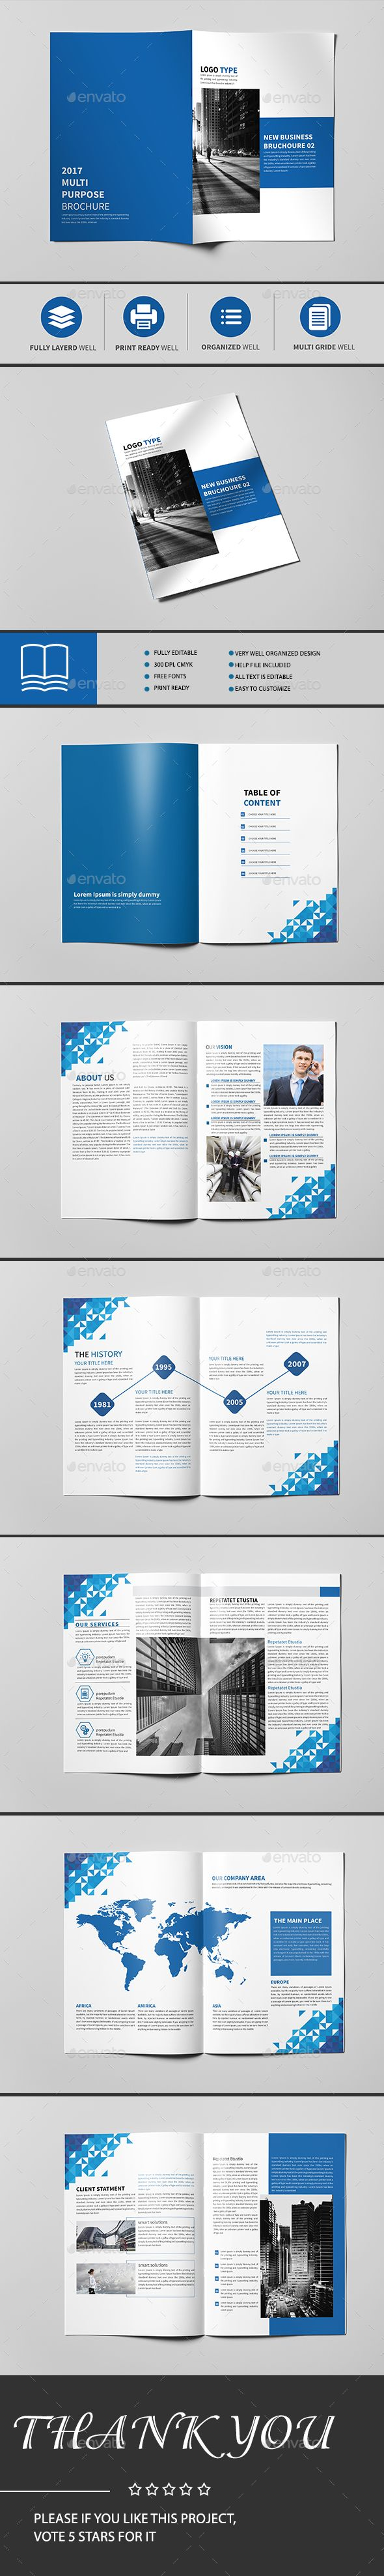 Annual Report Brochure 14 page | Annual reports, Brochures and Template